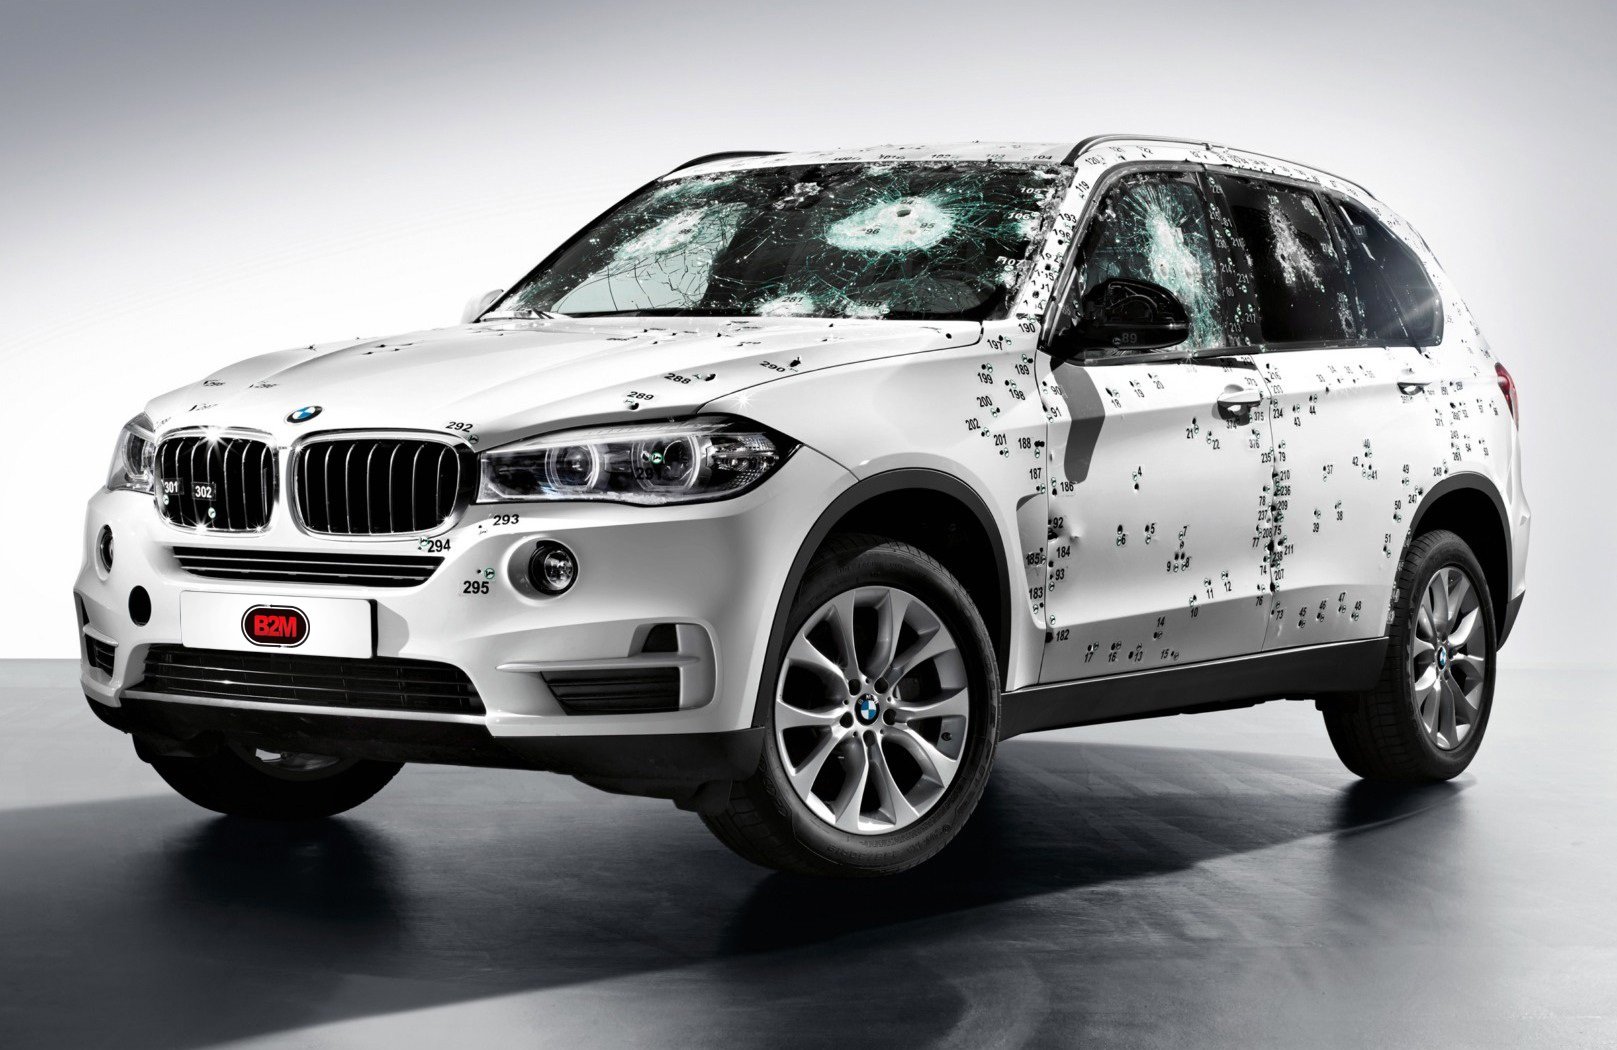 Image with 2014 BMW X5 Security